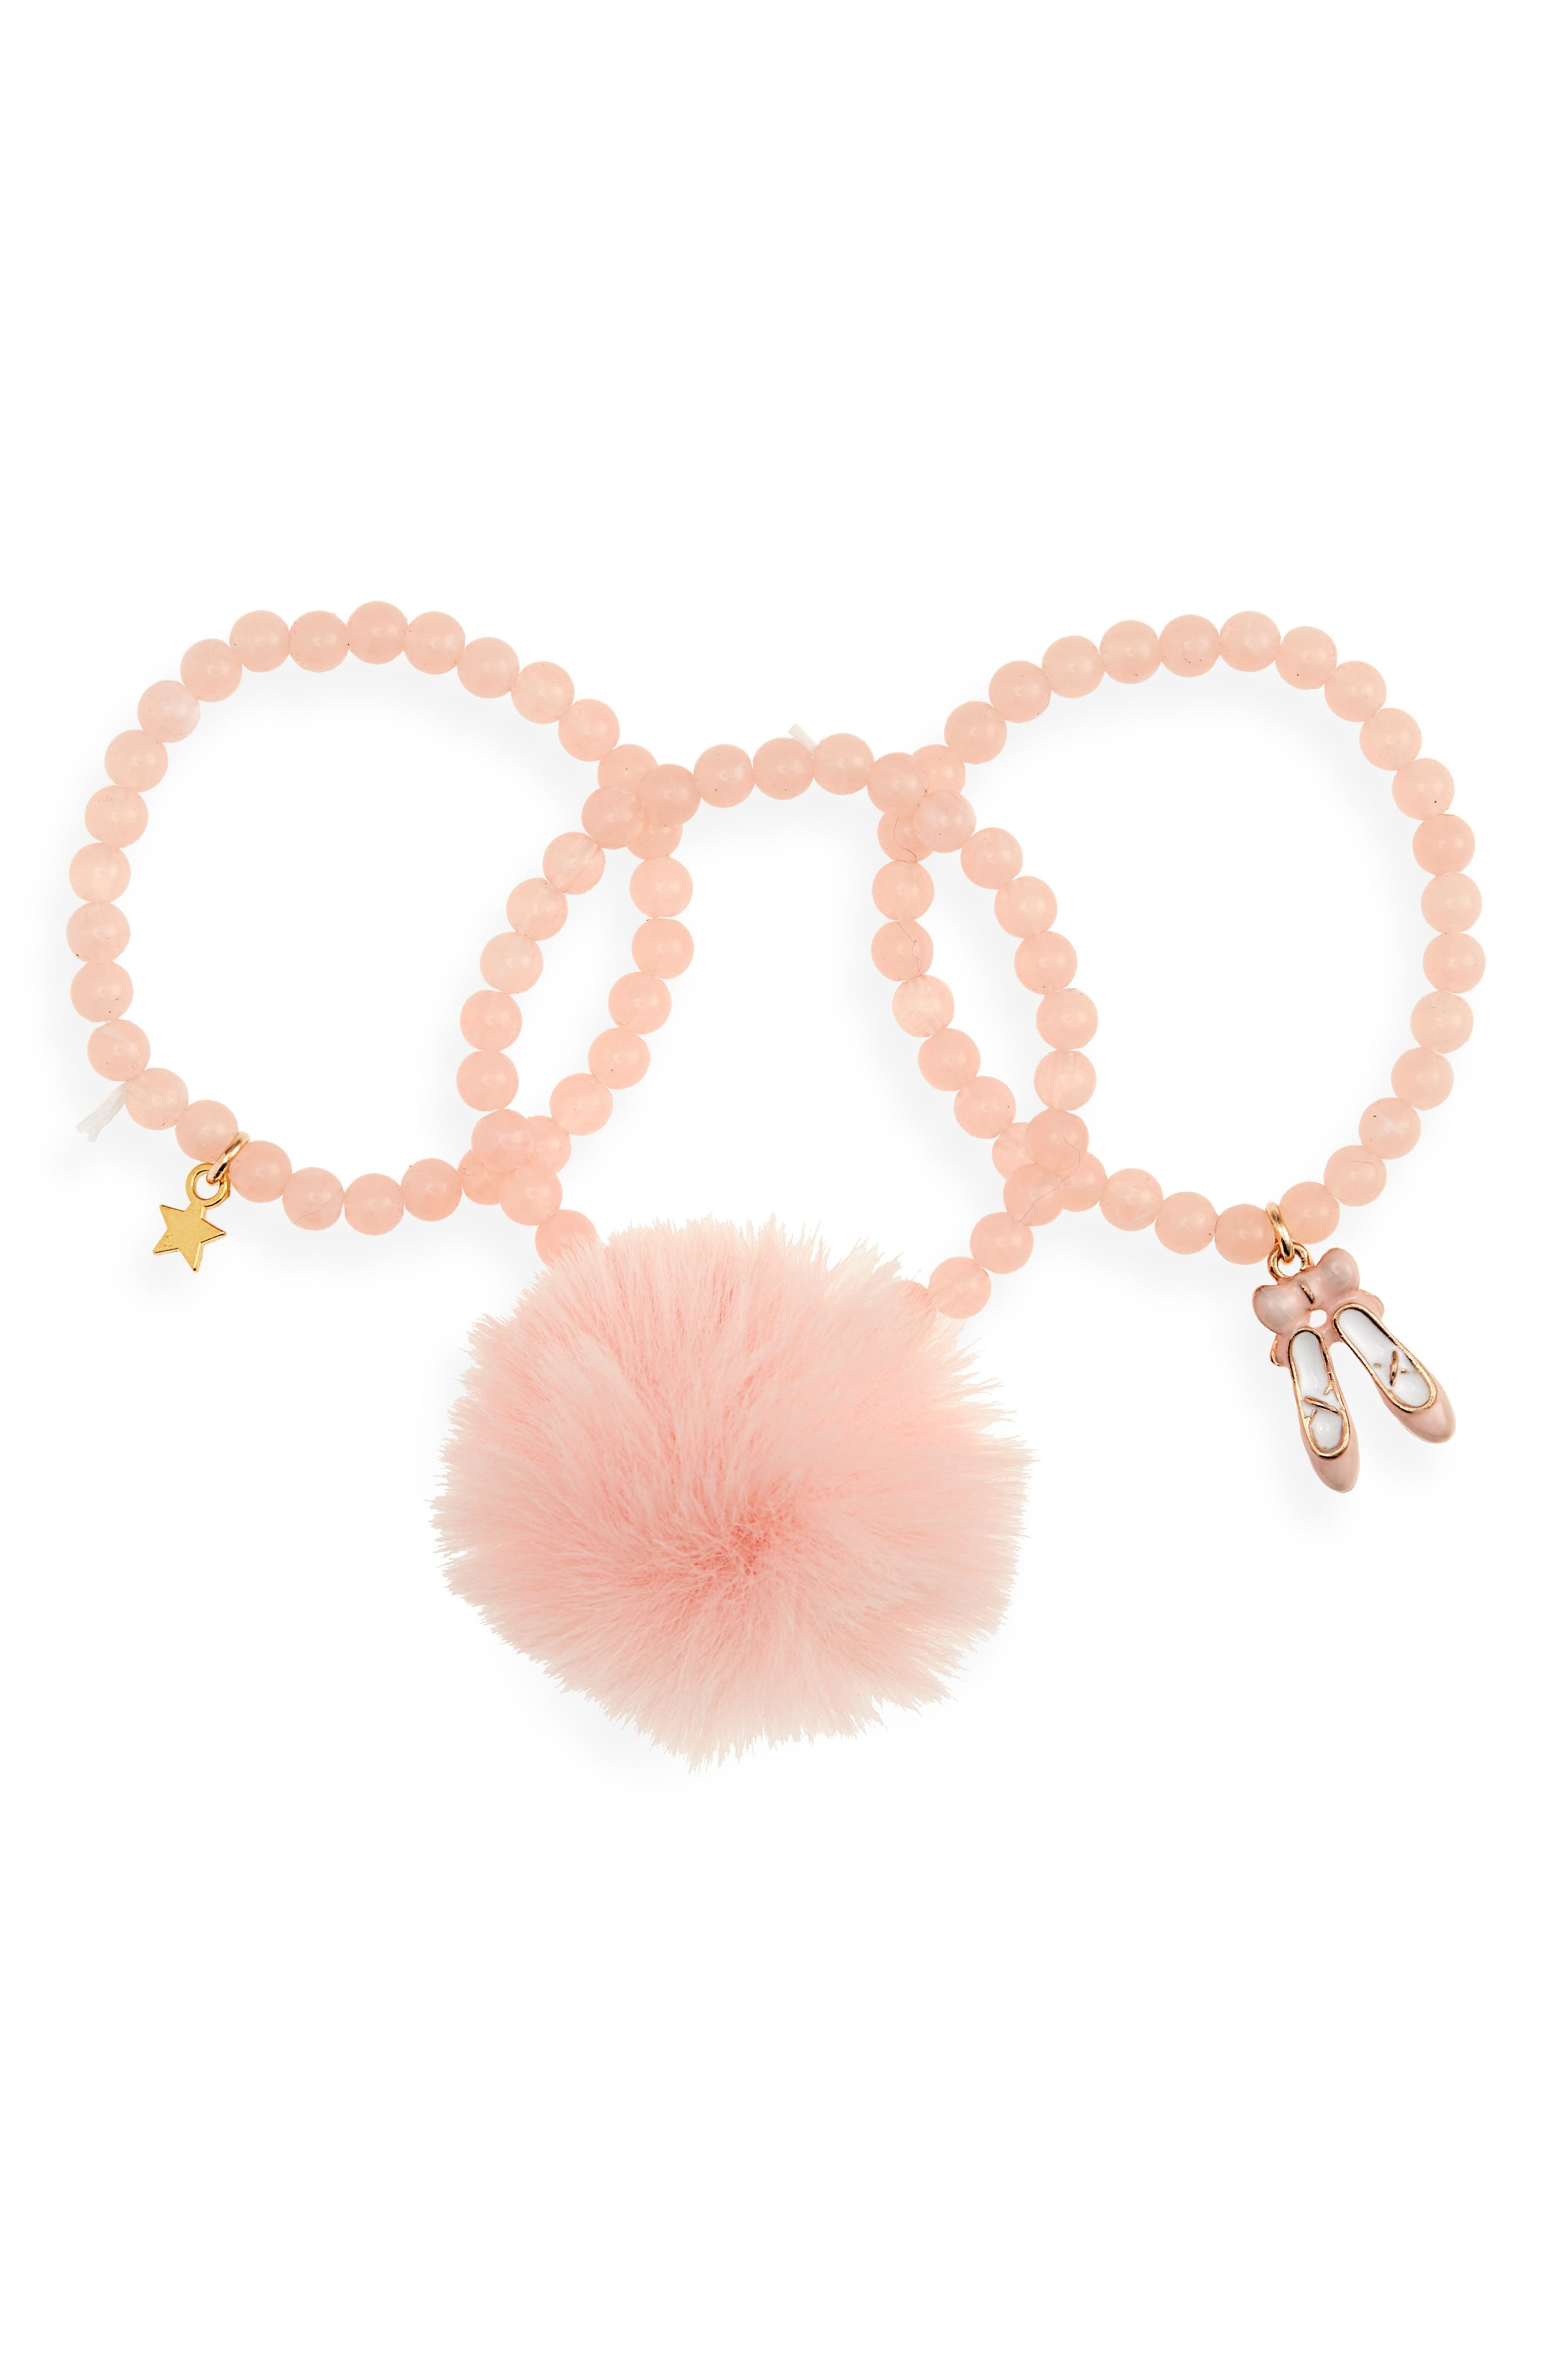 3-Pack Beaded Ballet Charm Bracelets,                             Main thumbnail 1, color,                             NUDE